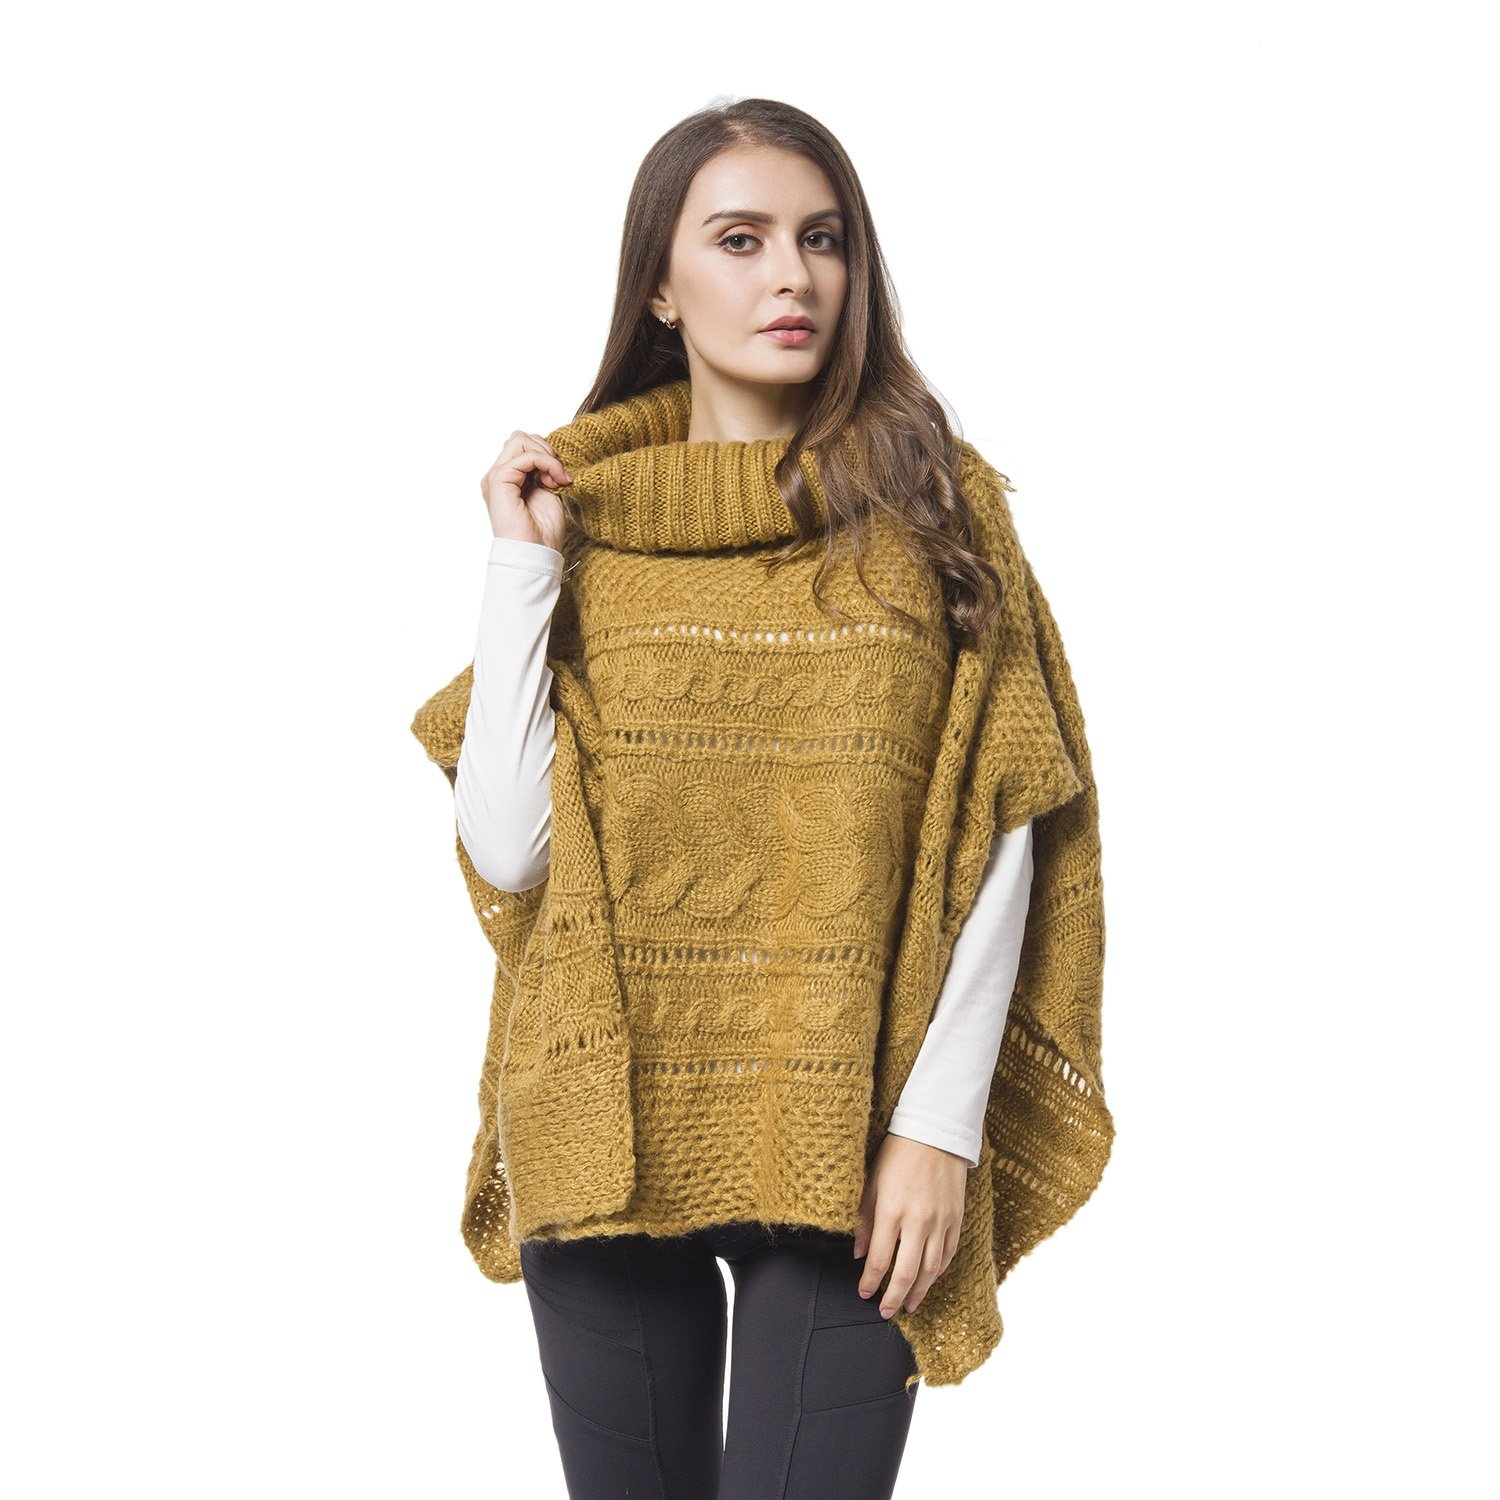 bed122215ac72 Poncho with high-neck collarband, Chain knitted pattern, Acrylic gives  woolen look and warmth, Hand knitted look, Pullover style relaxed design.